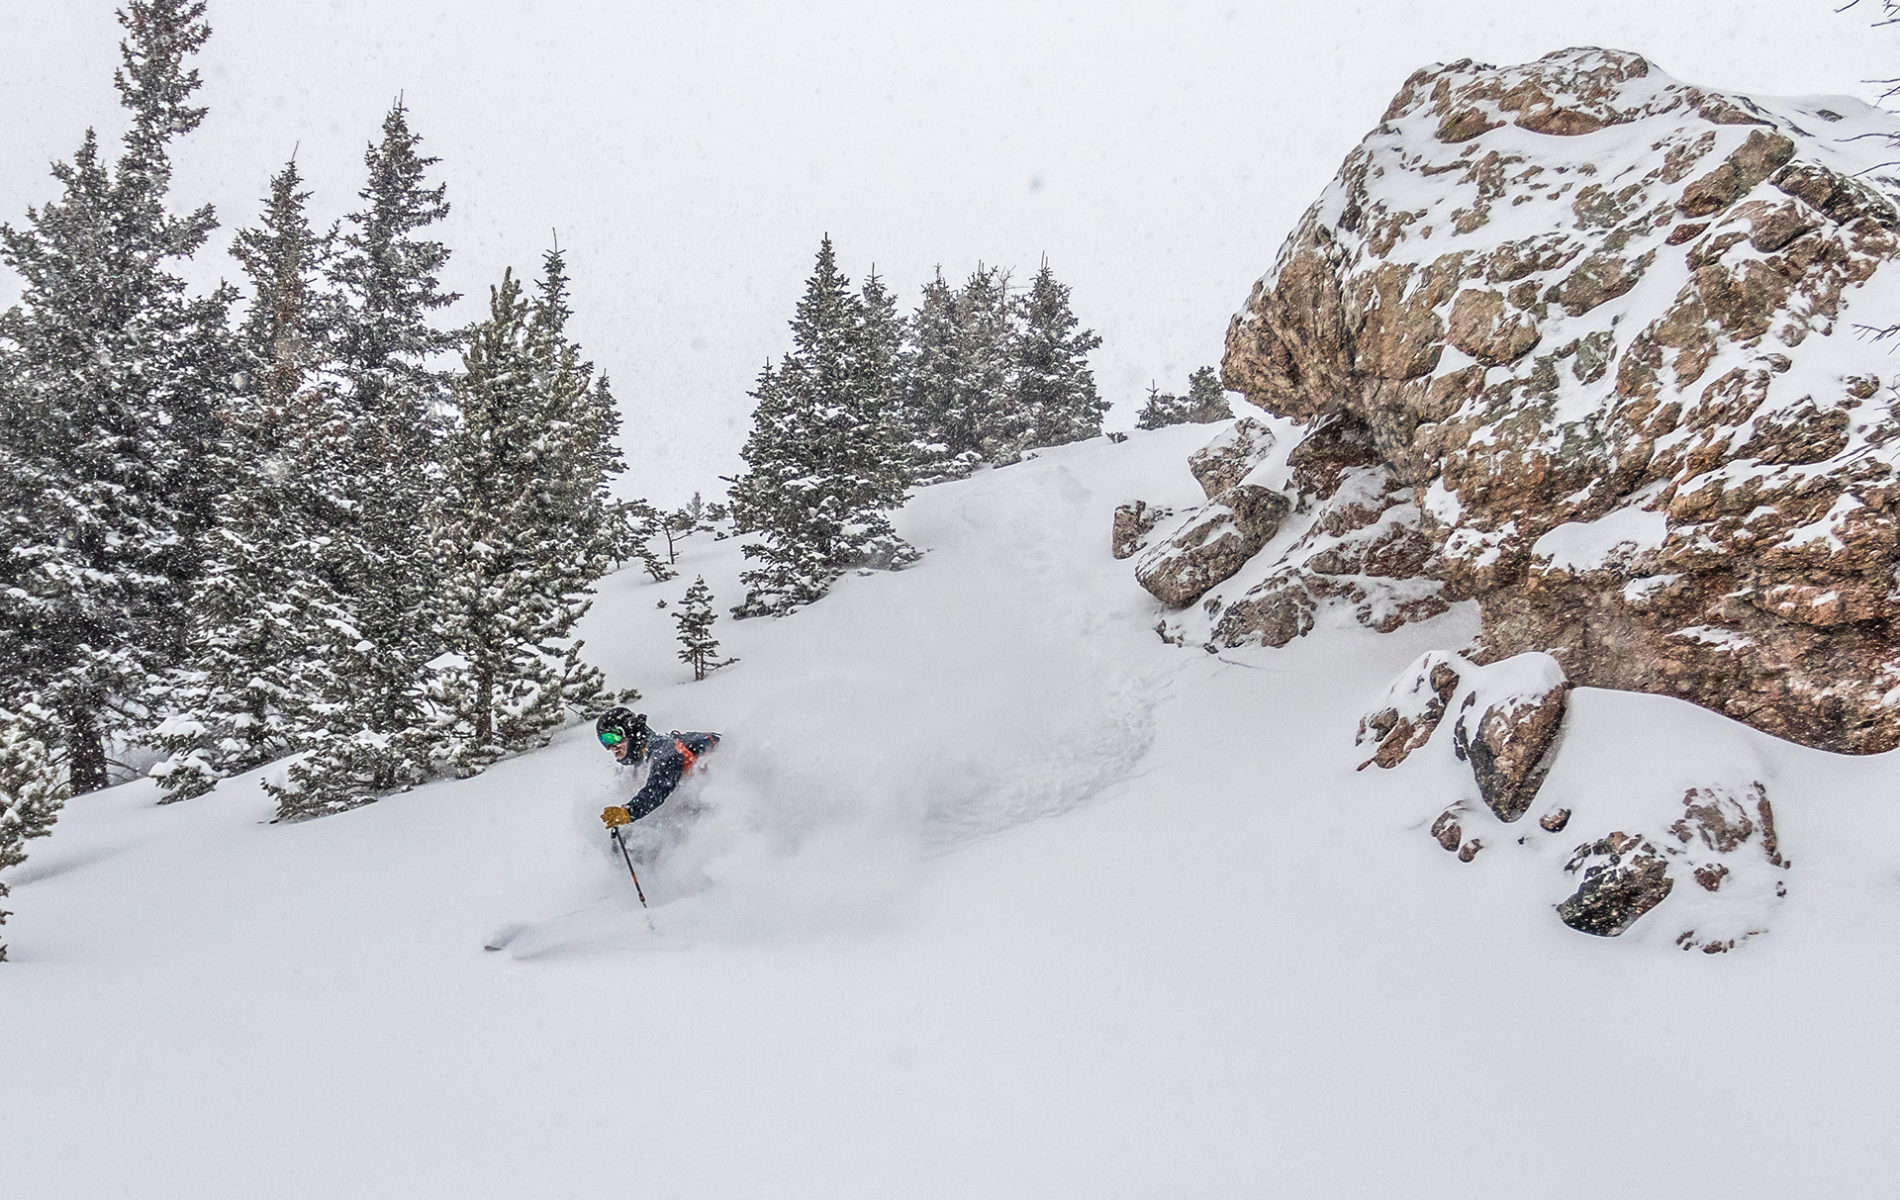 FREESKIER Editor Donny O'Neill slithering through fresh pockets near treeline.